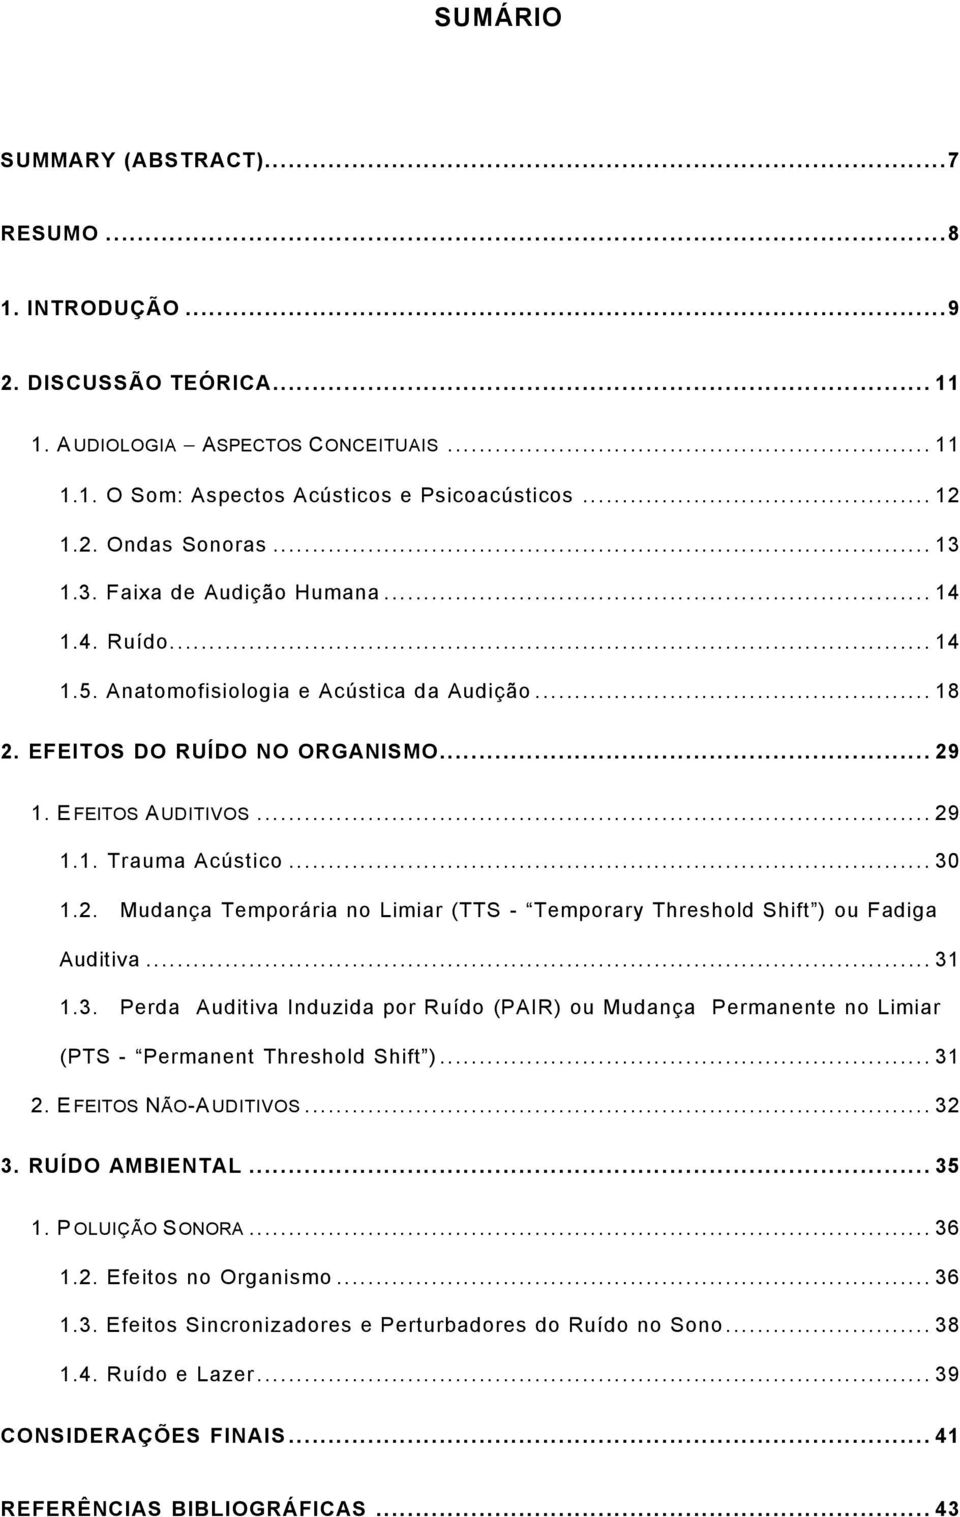 .. 30 1.2. Mudança Temporária no Limiar (TTS - Temporary Threshold Shift ) ou Fadiga Auditiva... 31 1.3. Perda Auditiva Induzida por Ruído (PAIR) ou Mudança Permanente no Limiar (PTS - Permanent Threshold Shift ).